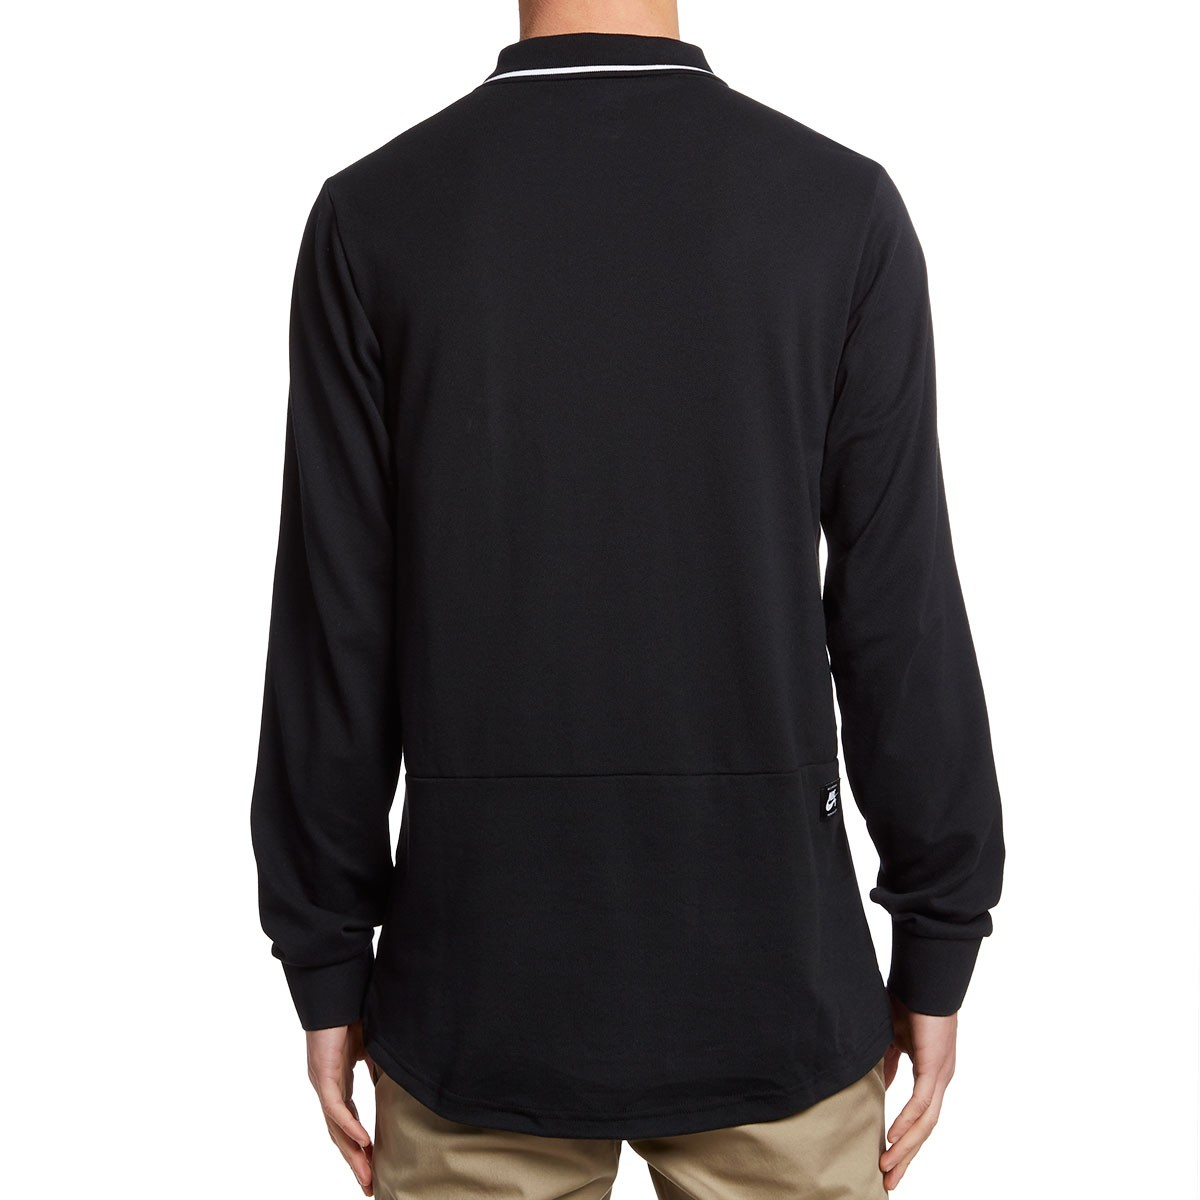 Nike SB Pique Long Sleeve Polo Shirt - Black/Anthracite